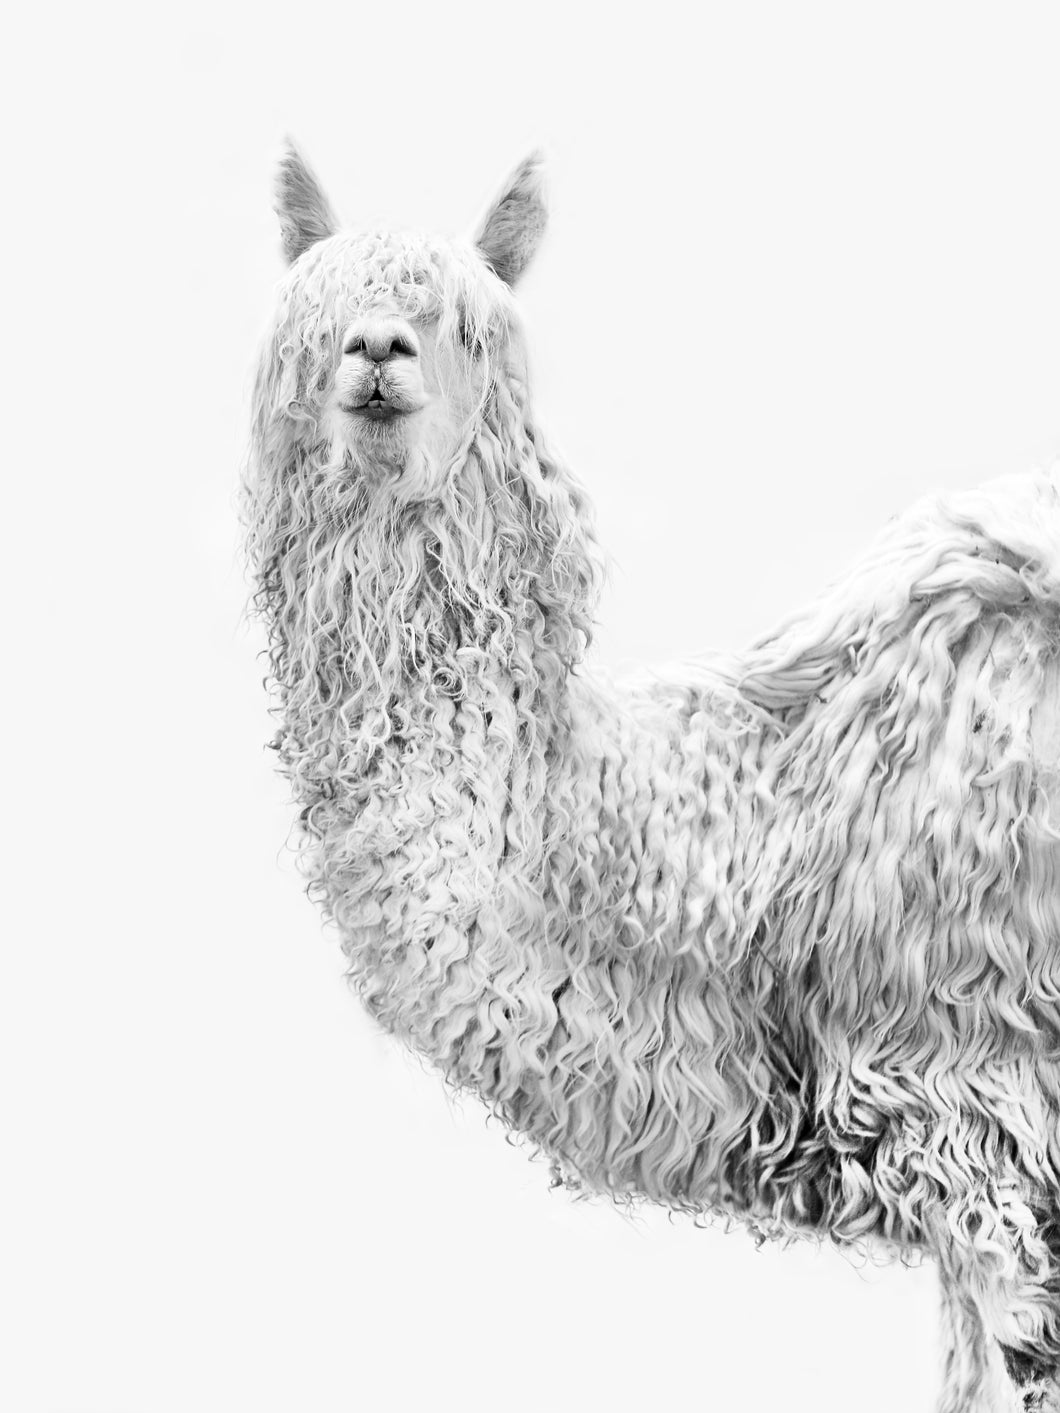 Alpaca II - Wall Art Black and White 75x100